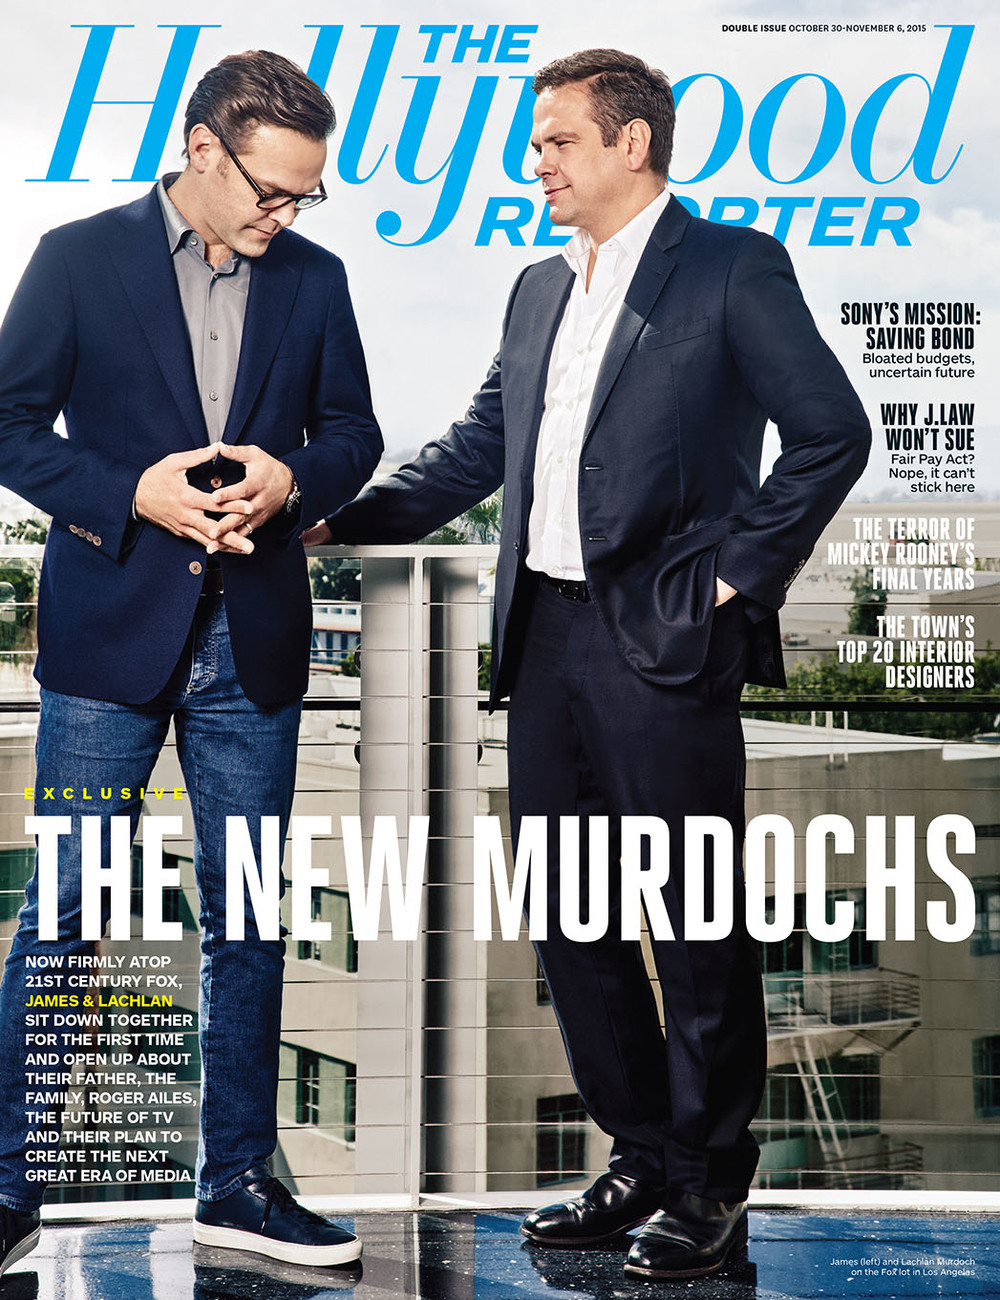 thr_issue_36_murdochs_cover.jpg